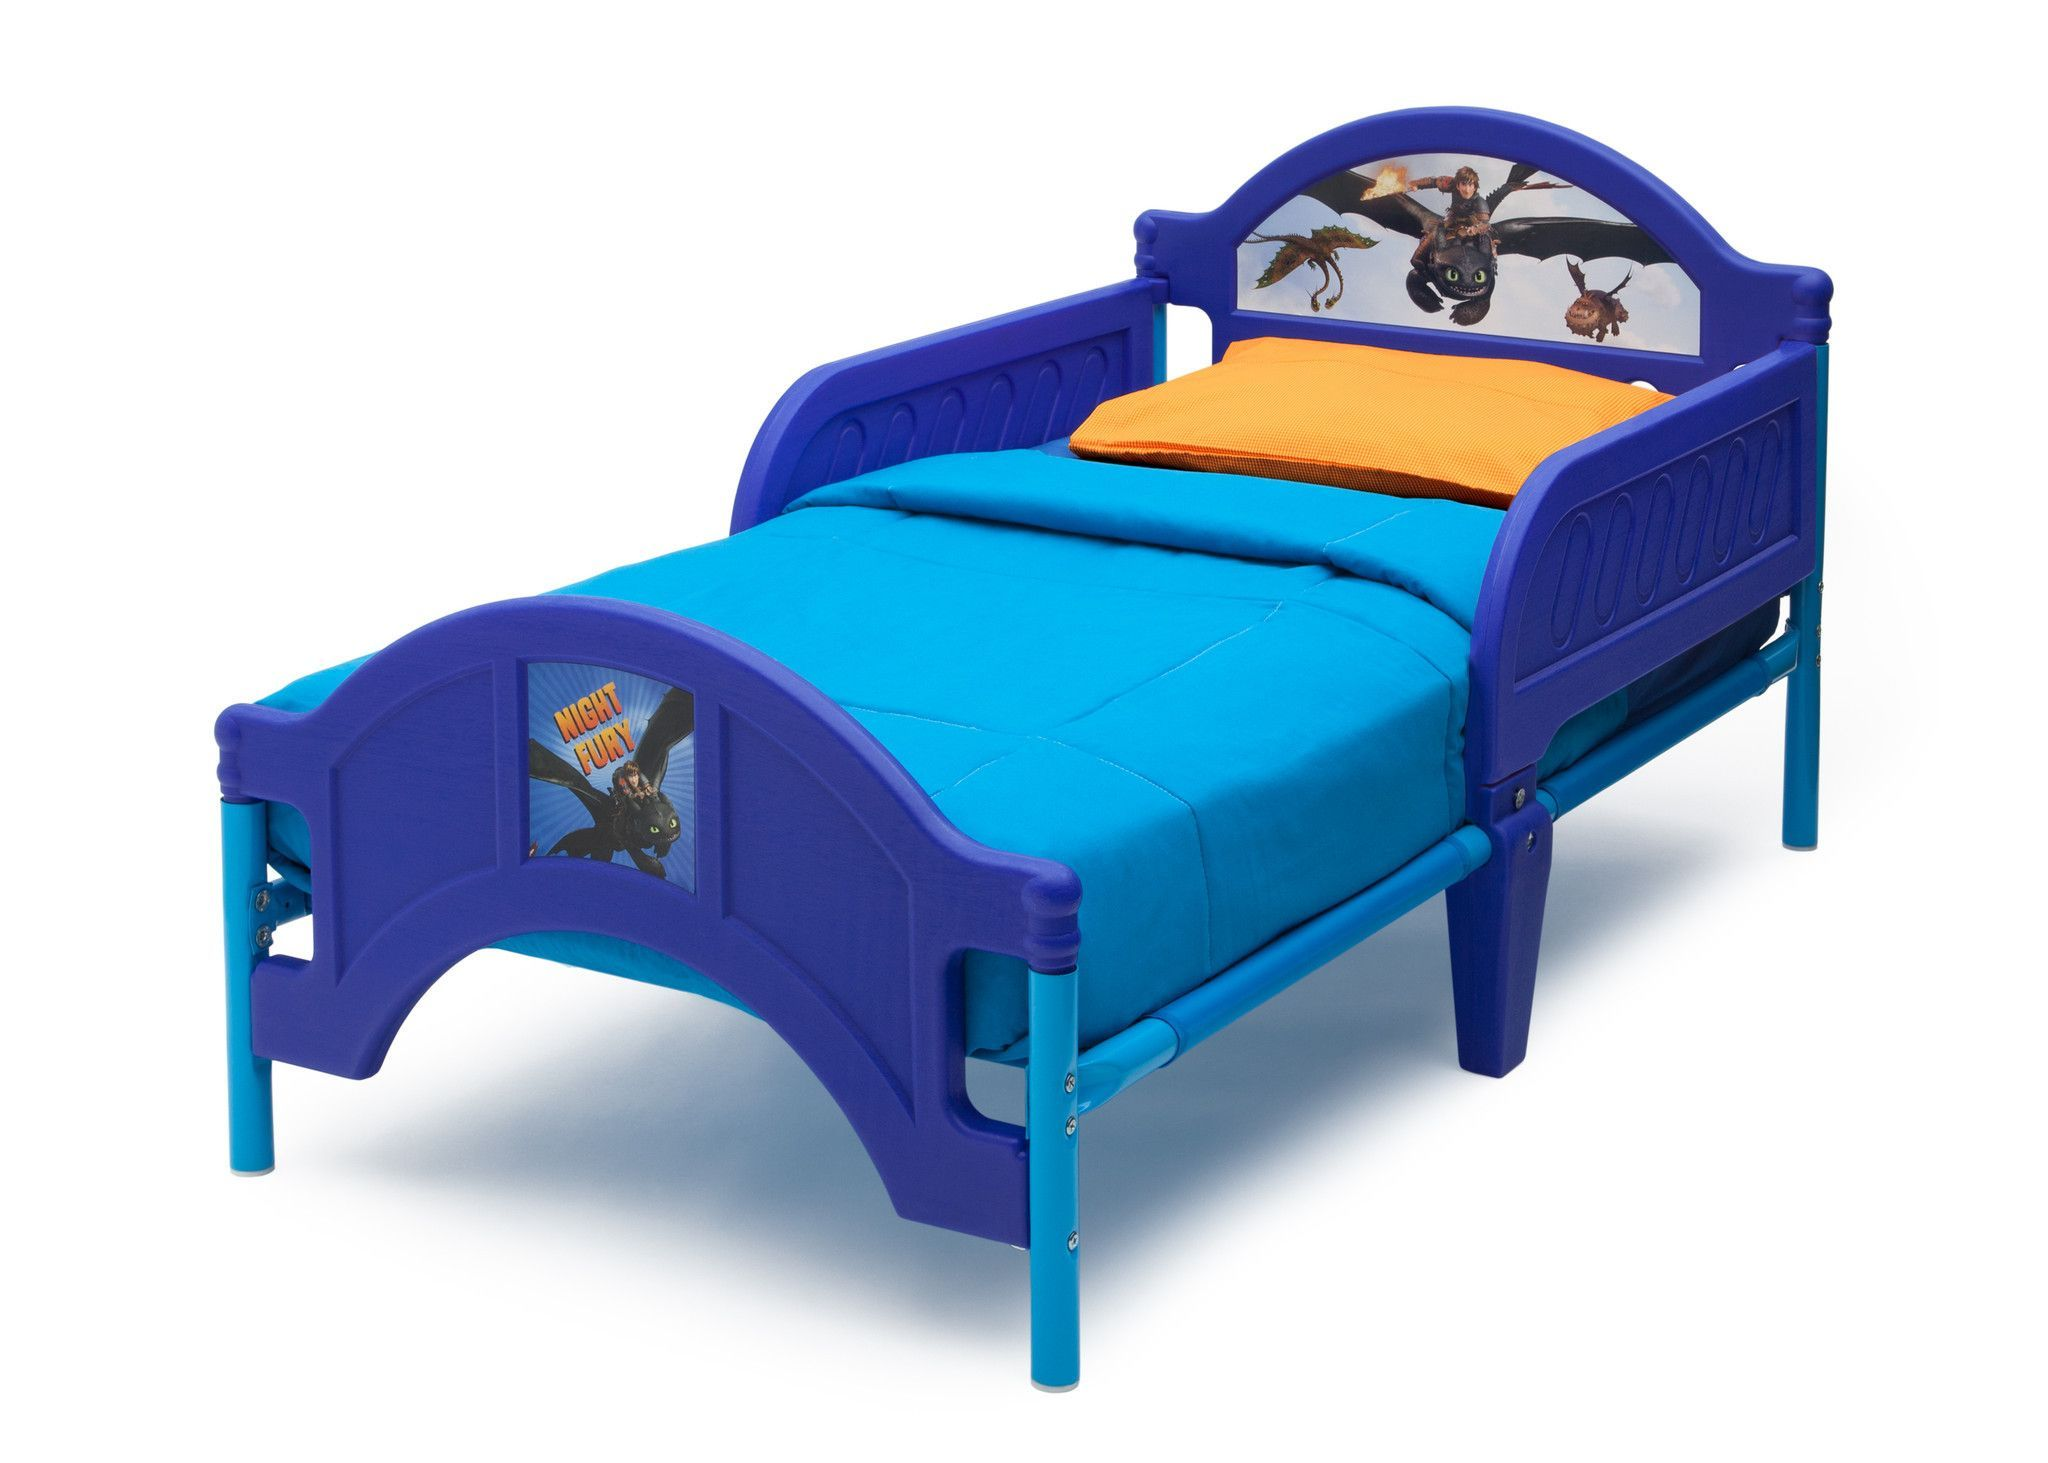 How To Train Your Dragon Plastic Toddler Bed Toddler Bed Frame